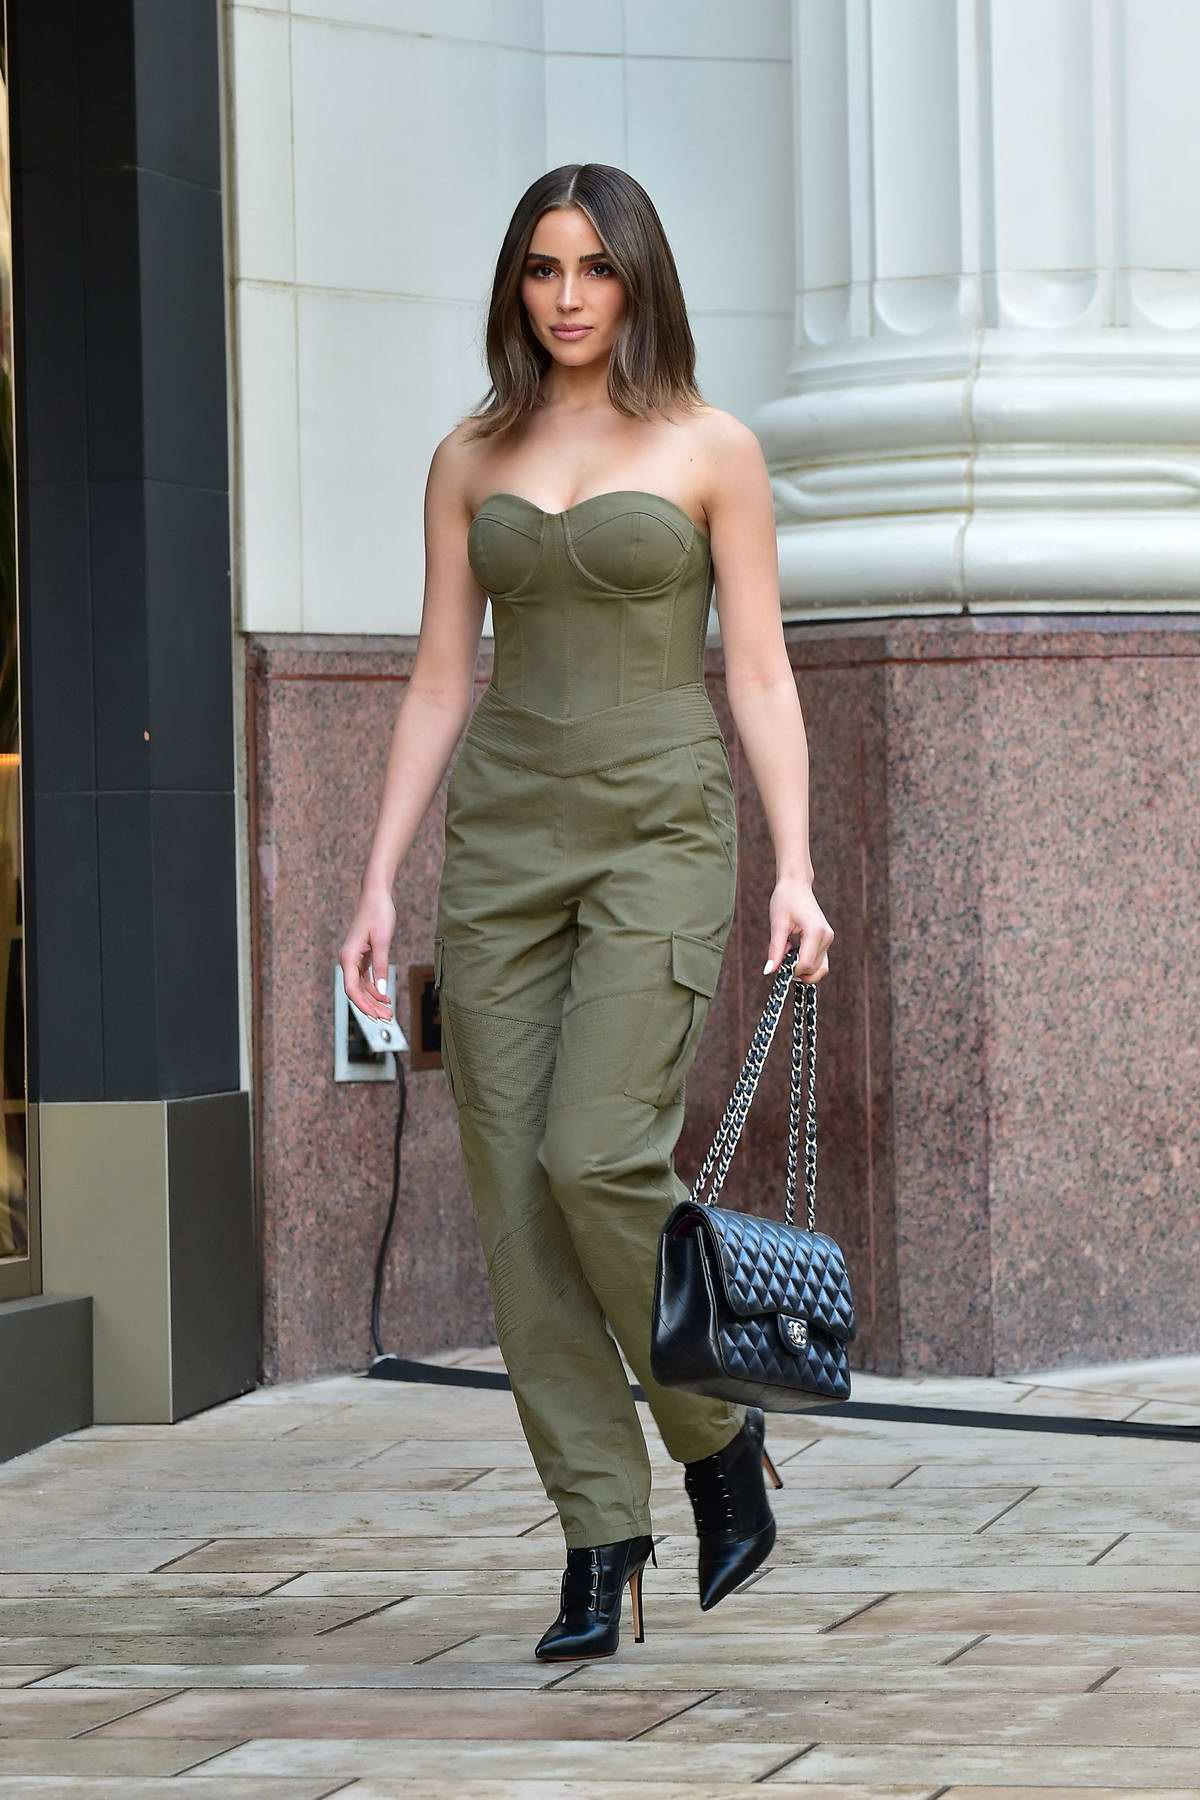 Olivia Culpo looks chic in an olive green jumpsuit while out shopping in Beverly Hills, Los Angeles